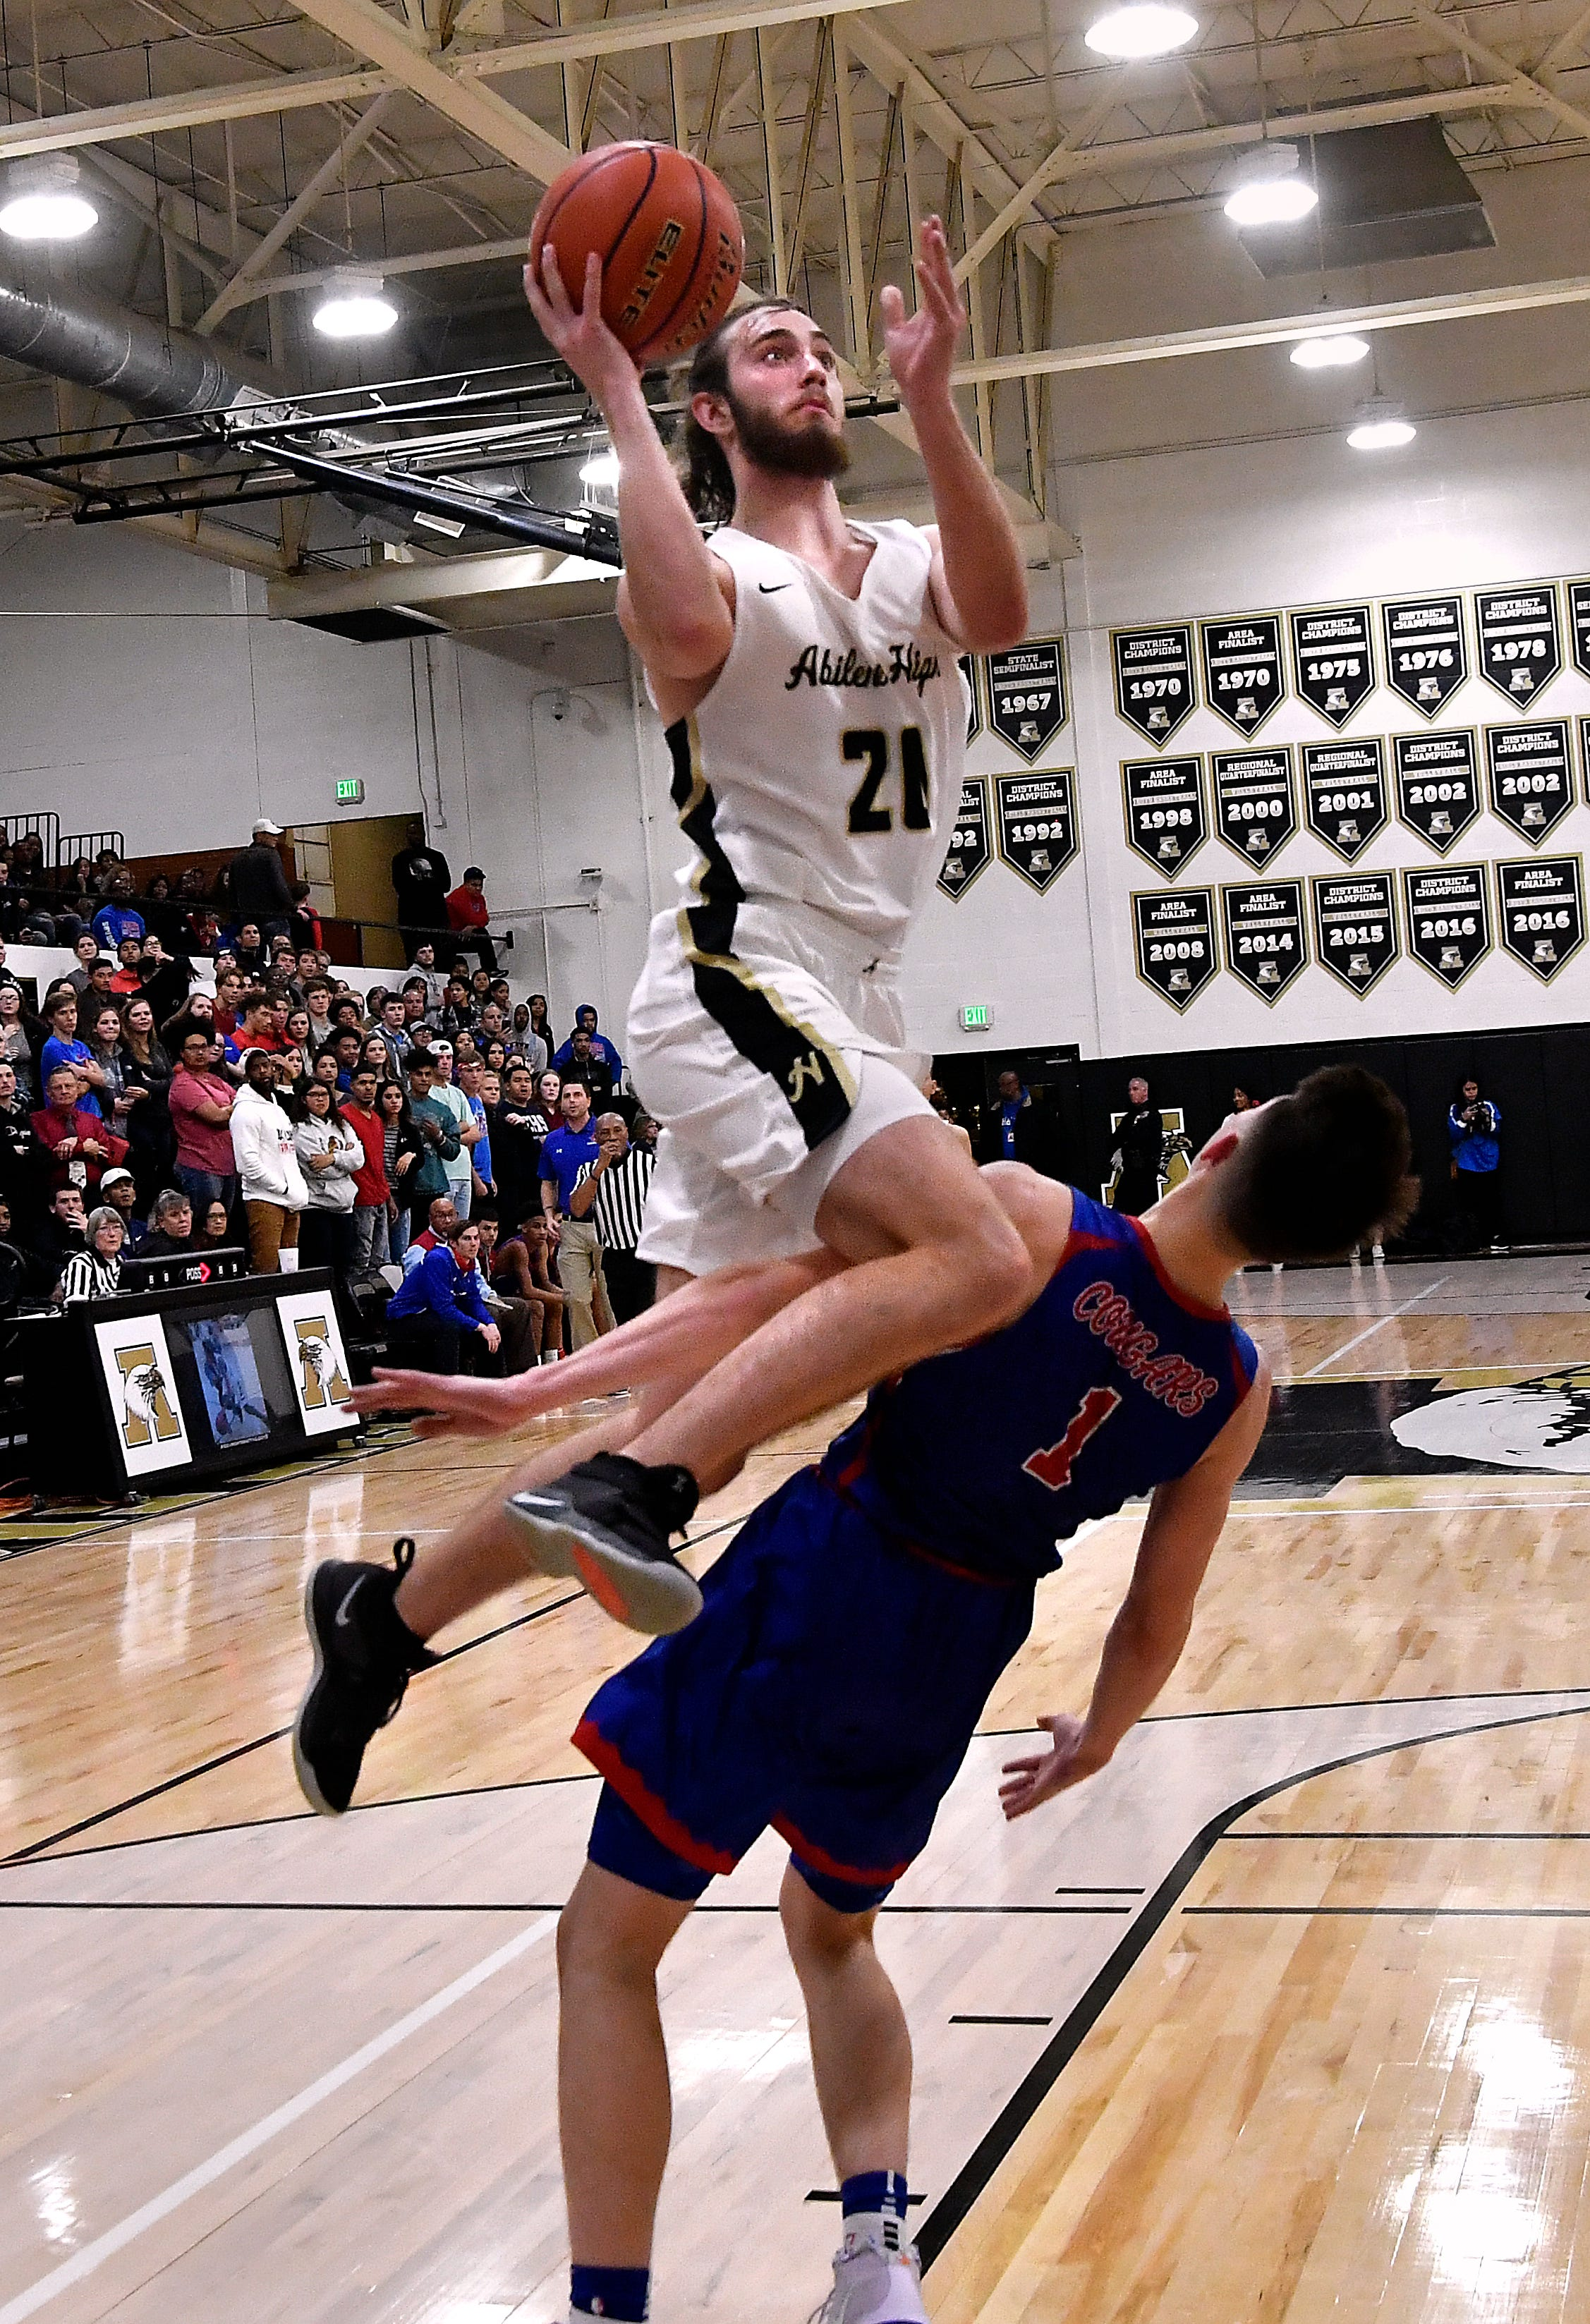 Abilene High forward Brian Patton climbs up the shoulder of Cooper High forward Deven Bailey during Friday's crosstown basketball game Dec. 14, 2018. Final score was 63-52, Abilene High.